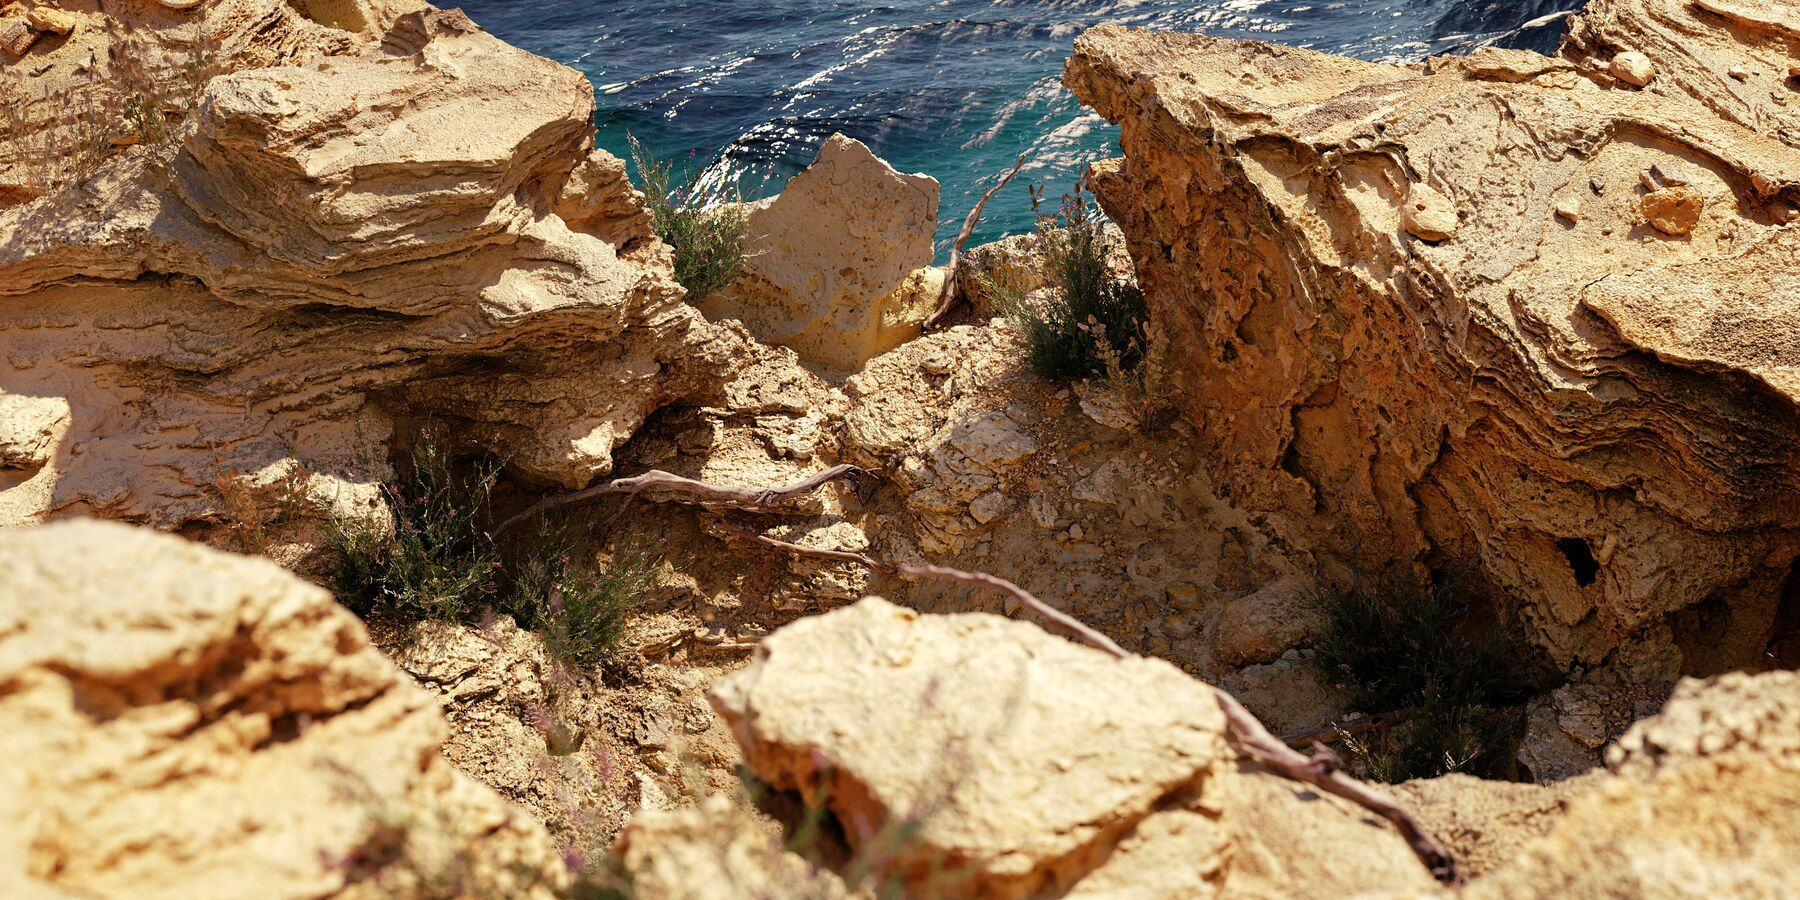 Photoscanned 3D digital nature scans rocks and plants of Formentera for creating a rendered rocky 3D coast scene.